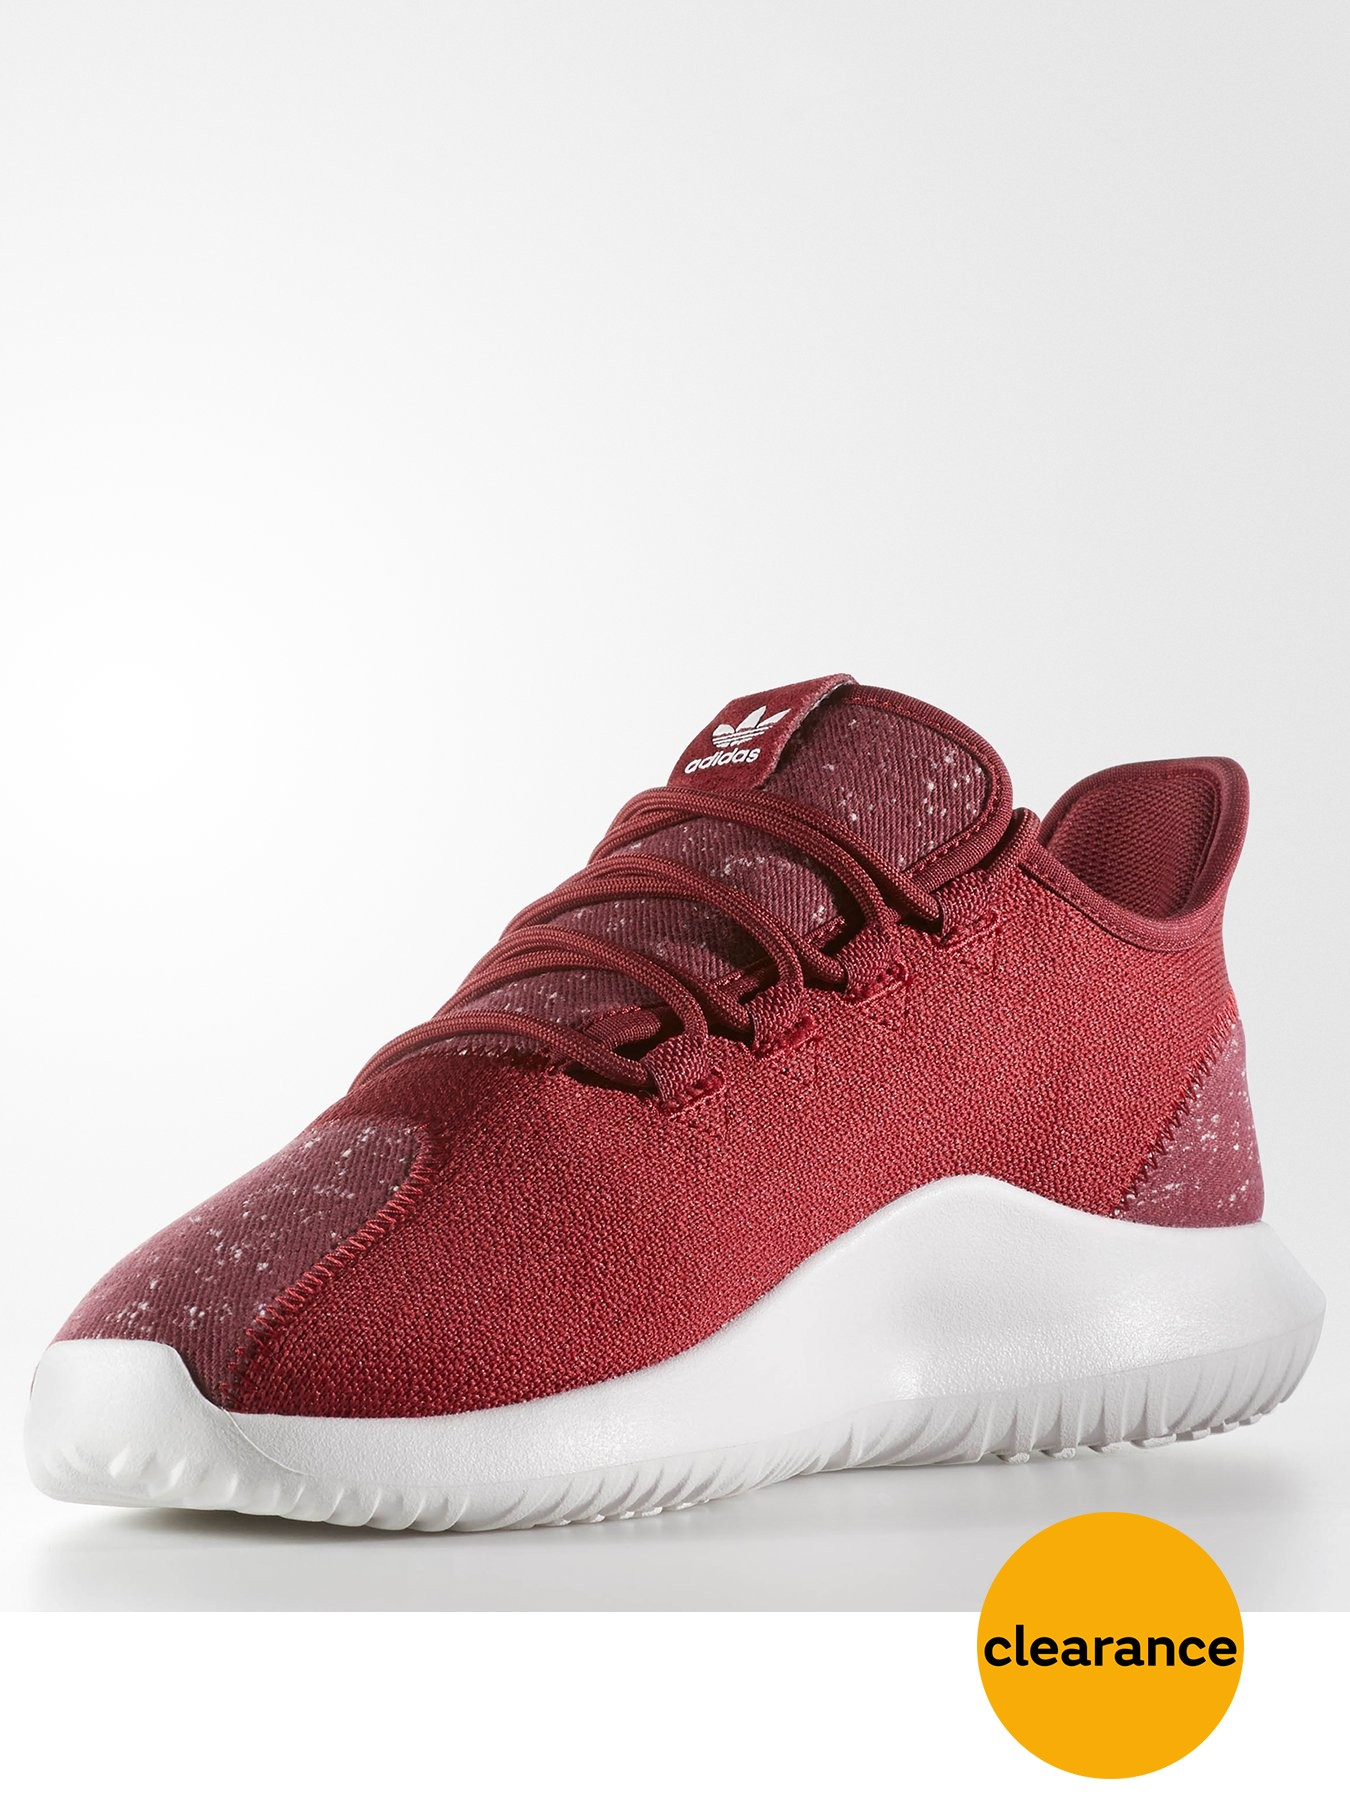 adidas Originals Tubular Shadow Burgundy 1600163618 Men's Shoes adidas Originals Trainers